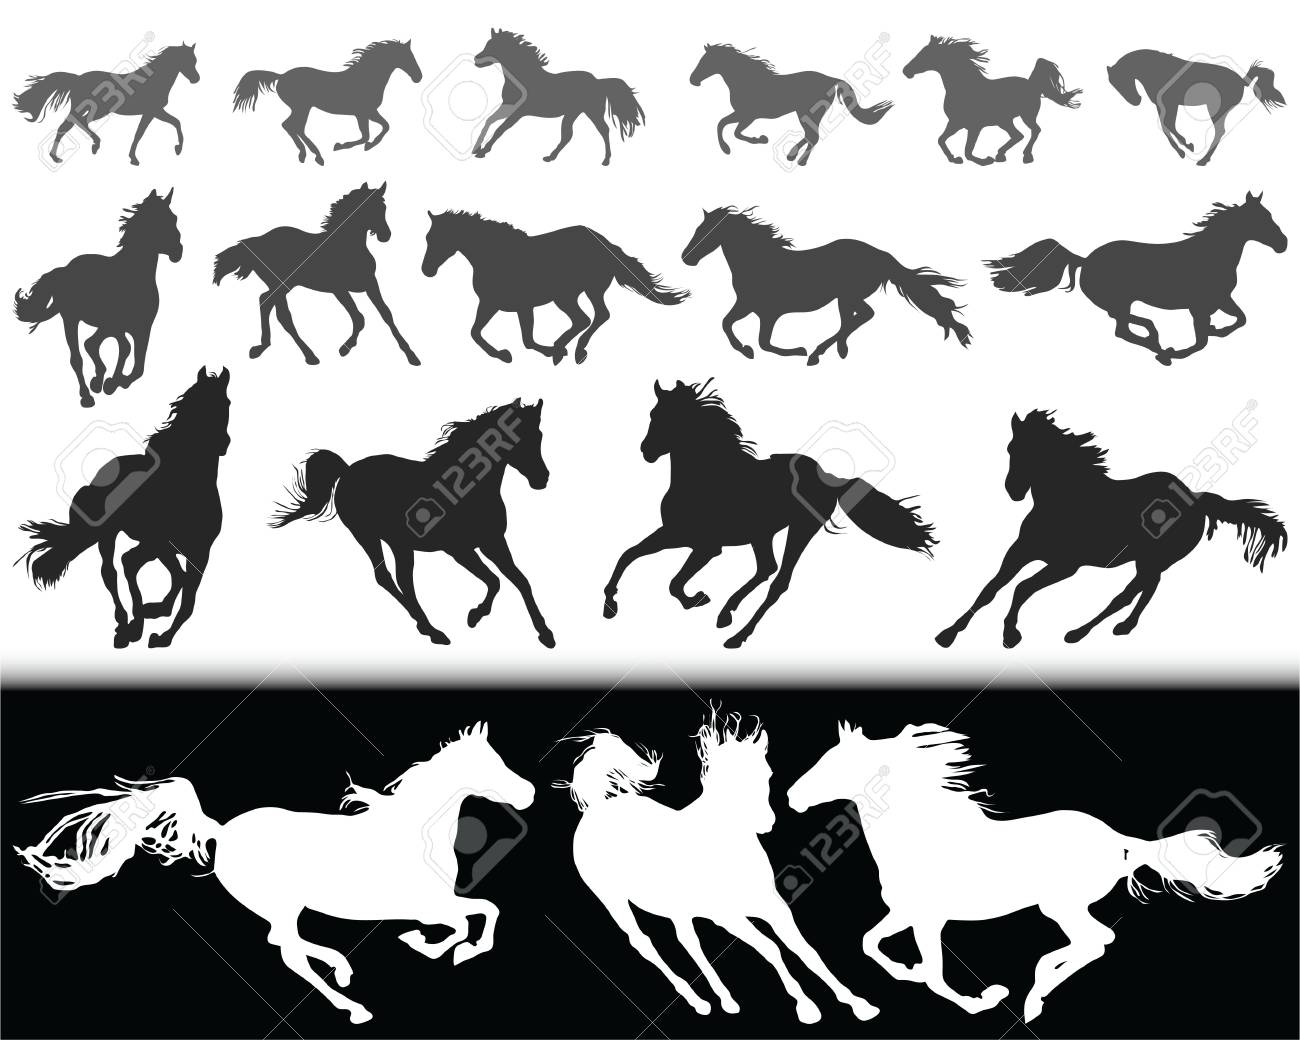 Black silhouettes of horses on a white background and white silhouettes on a black background. - 92536335